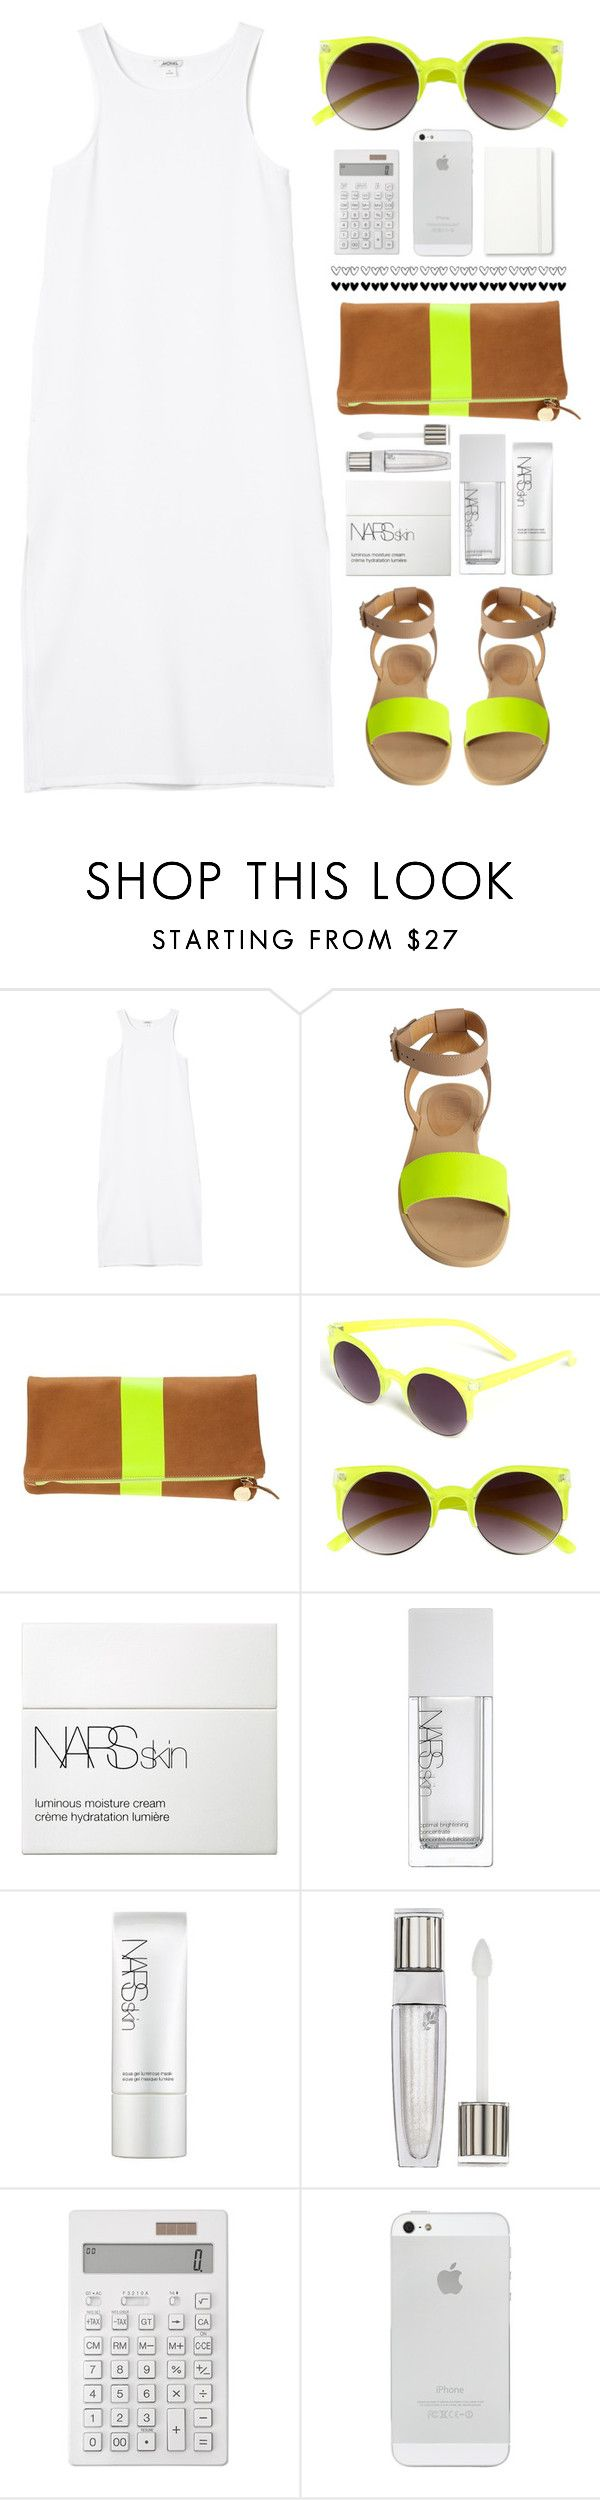 """""""GET READY FOR SPRING / SUMMER...."""" by erino9519 ❤ liked on Polyvore featuring Monki, MM6 Maison Margiela, Clare V., Quay, NARS Cosmetics, Lancôme, Muji and Moleskine"""